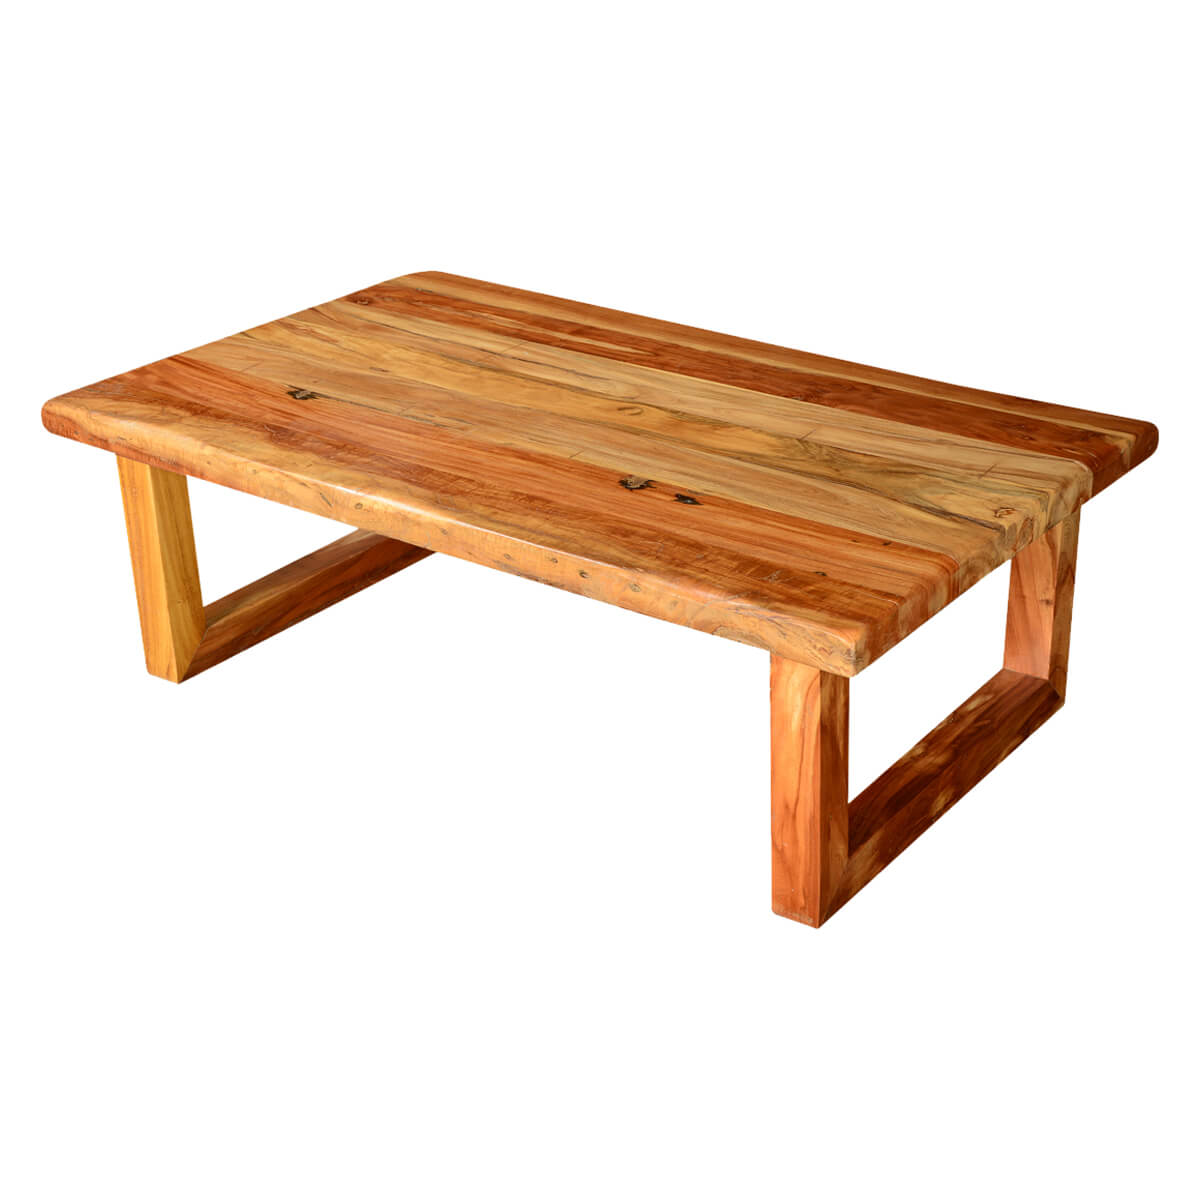 Rustic wood coffee tables for Wooden coffee tables images